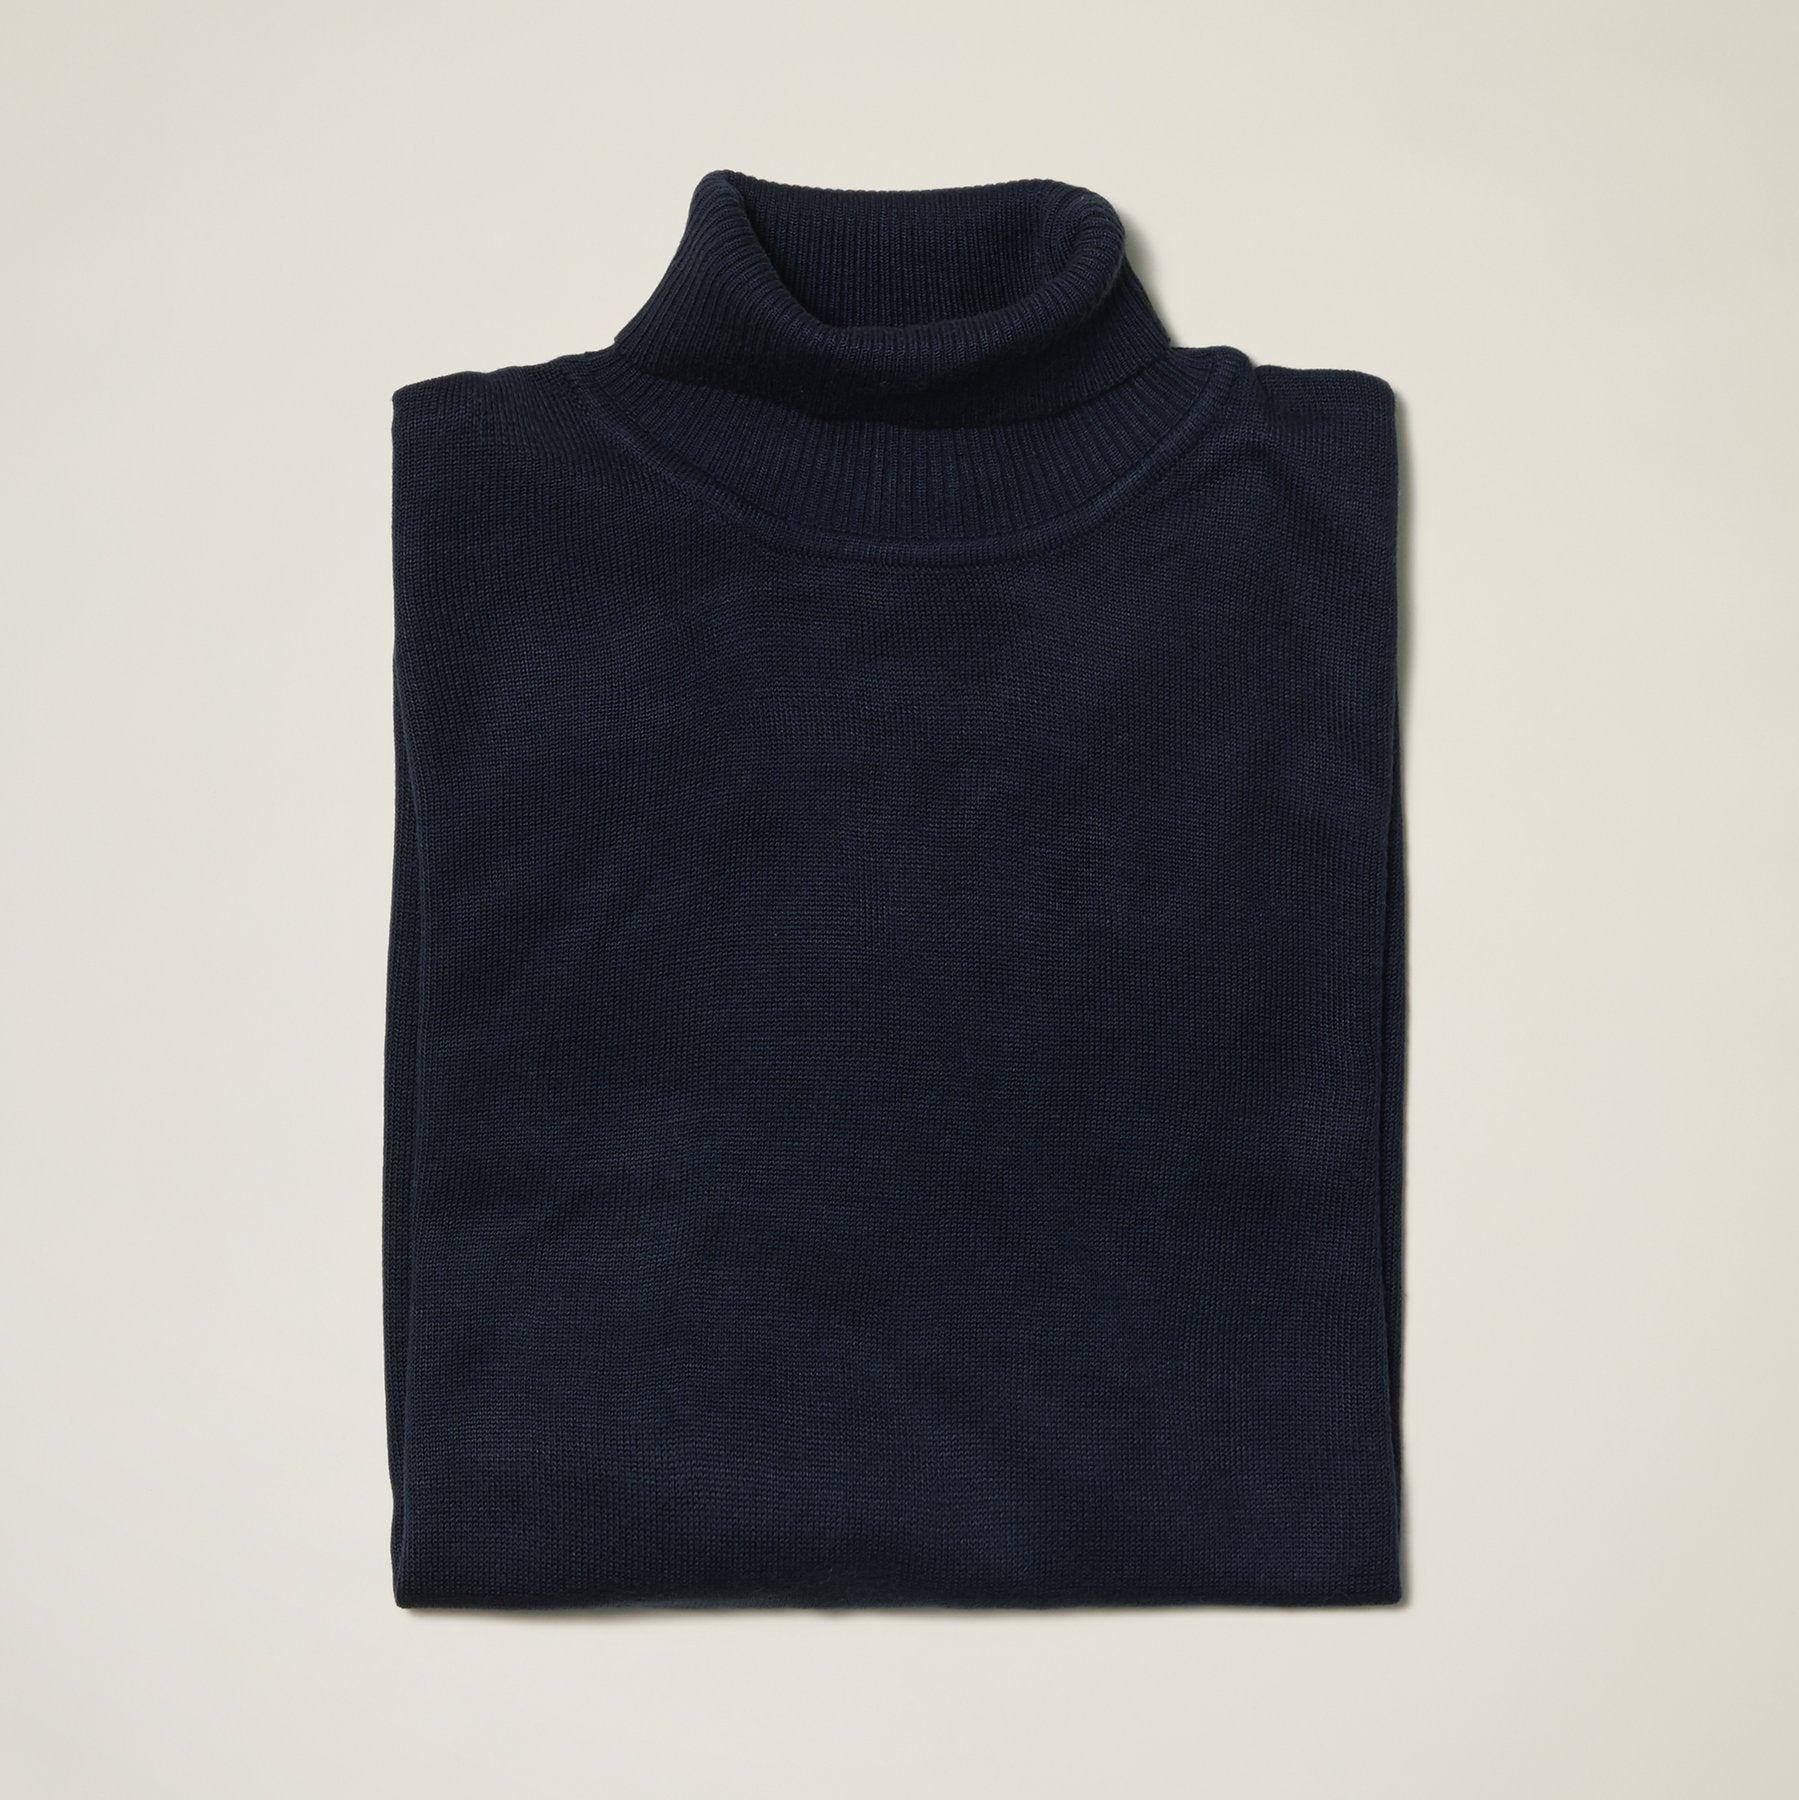 InSerch Acrylic Turtleneck Navy (4708)